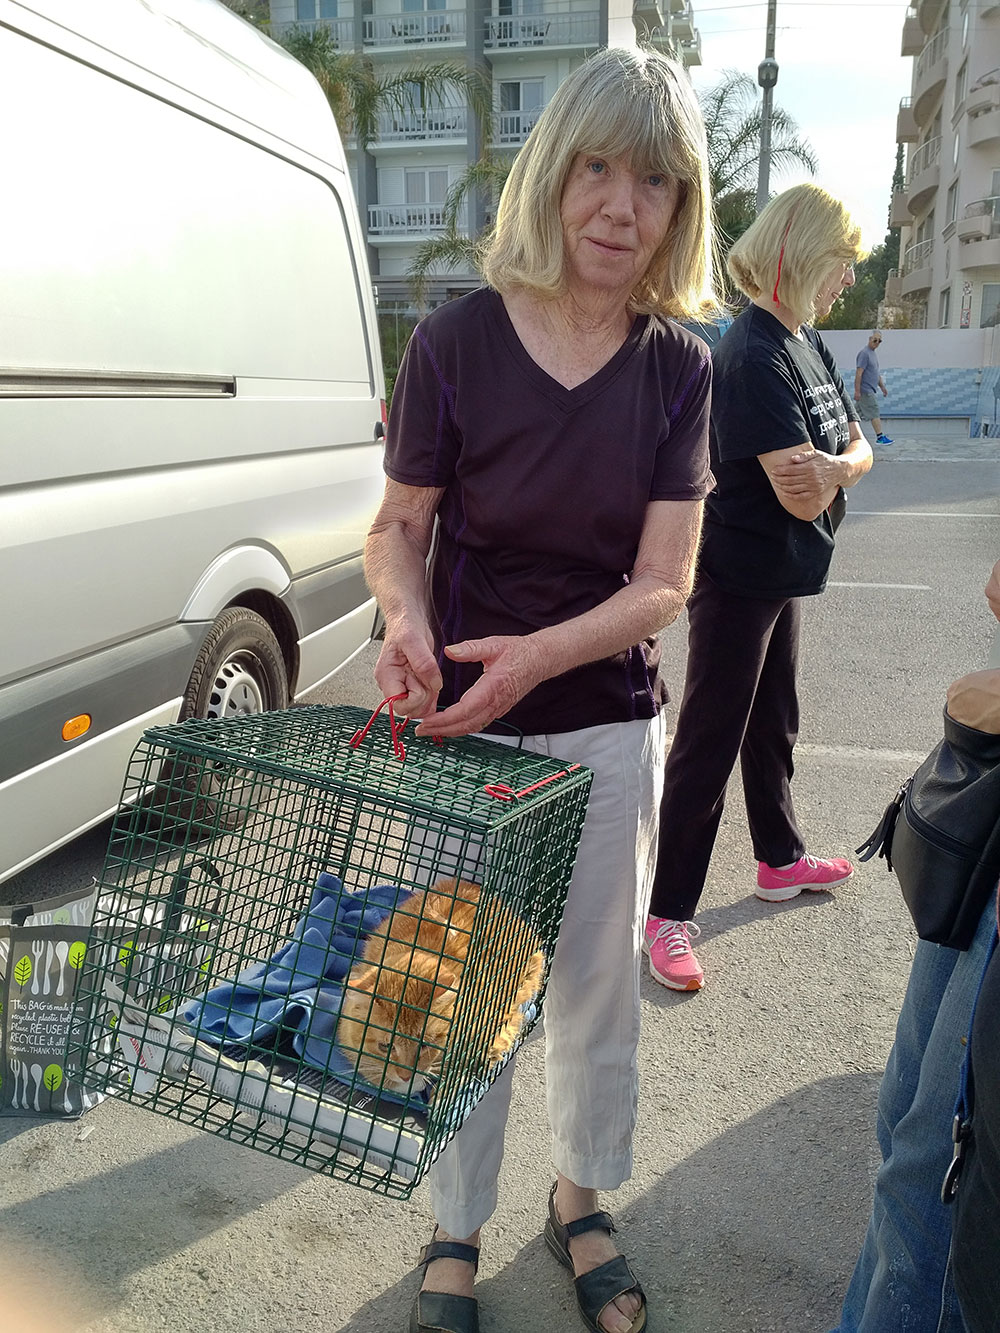 Carol, who delivered Lucky, is a board member at Nine Lives. She's been involved in animal rescue for quite a while, having previously worked for Greek Animal Rescue in Athens.